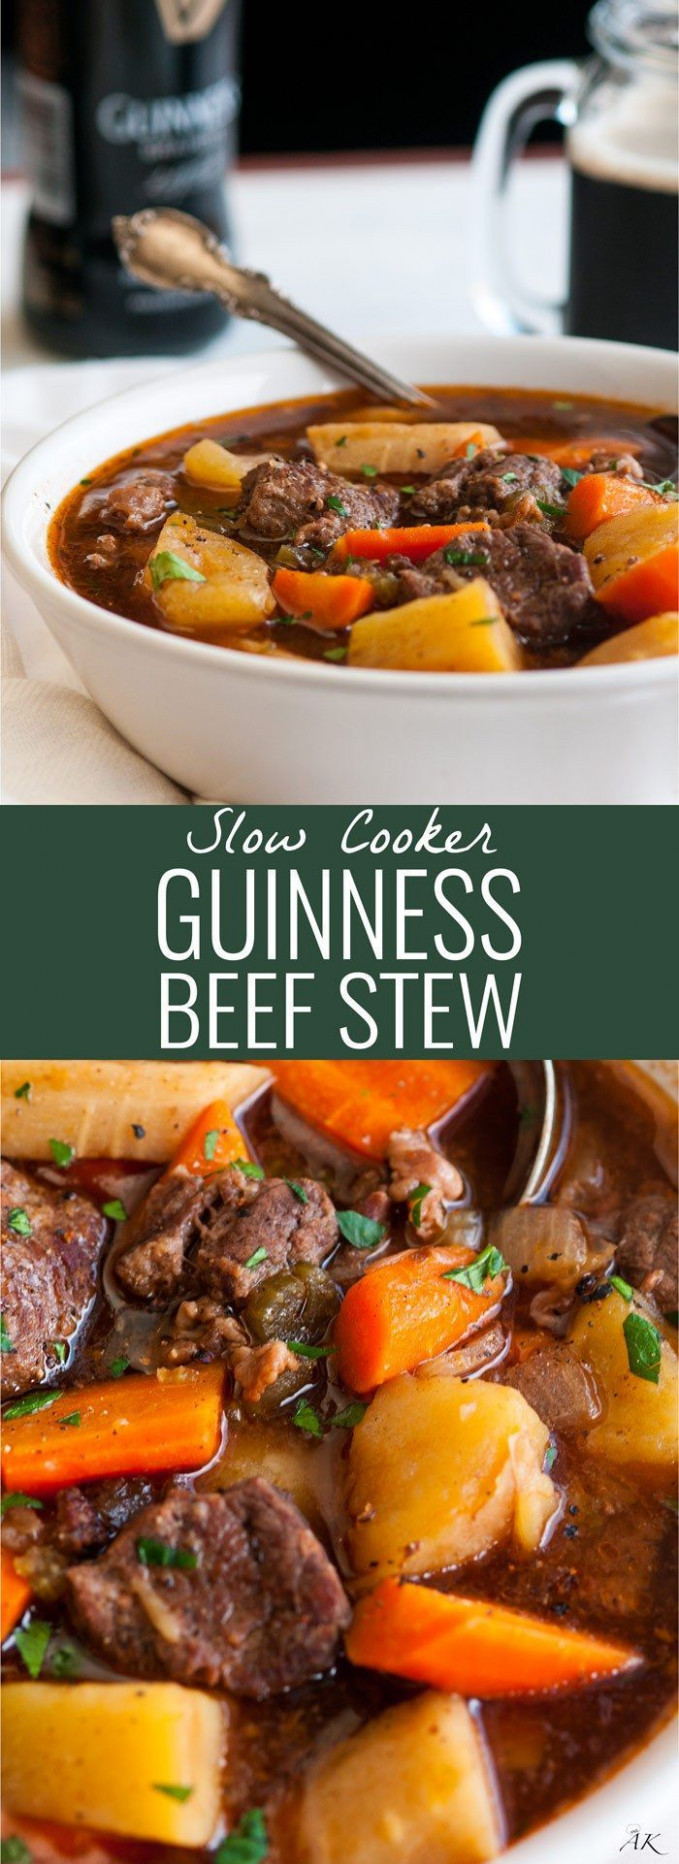 Slow Cooker Guinness Beef Stew | Recipe | Food - Soups ...